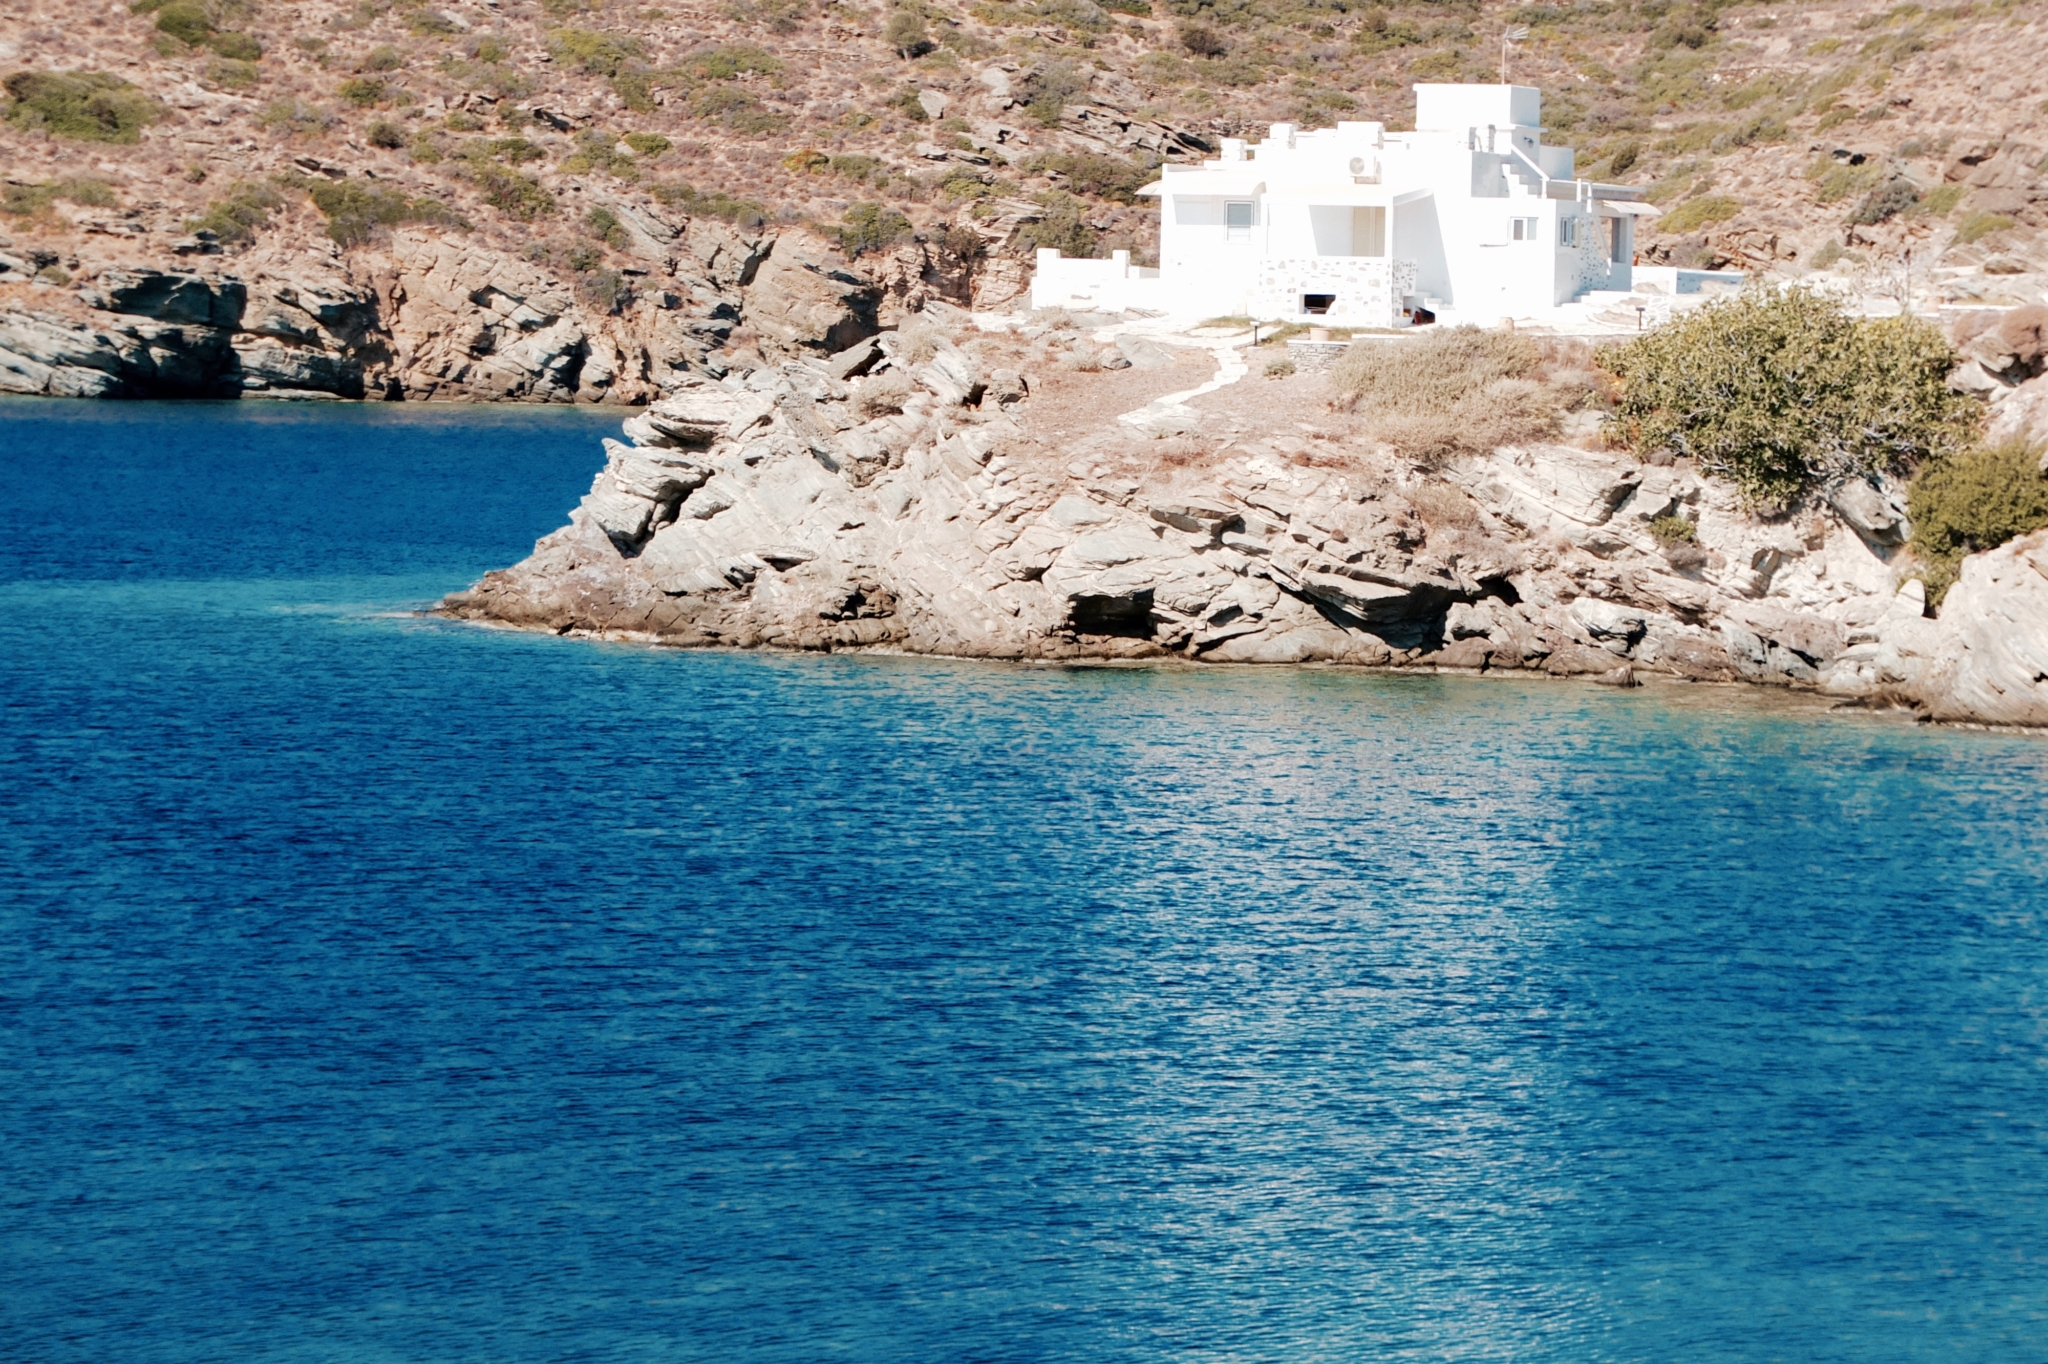 SAVE THE DATE: Join Me On A Food, Writing & Creative Escape To The Greek Islands…